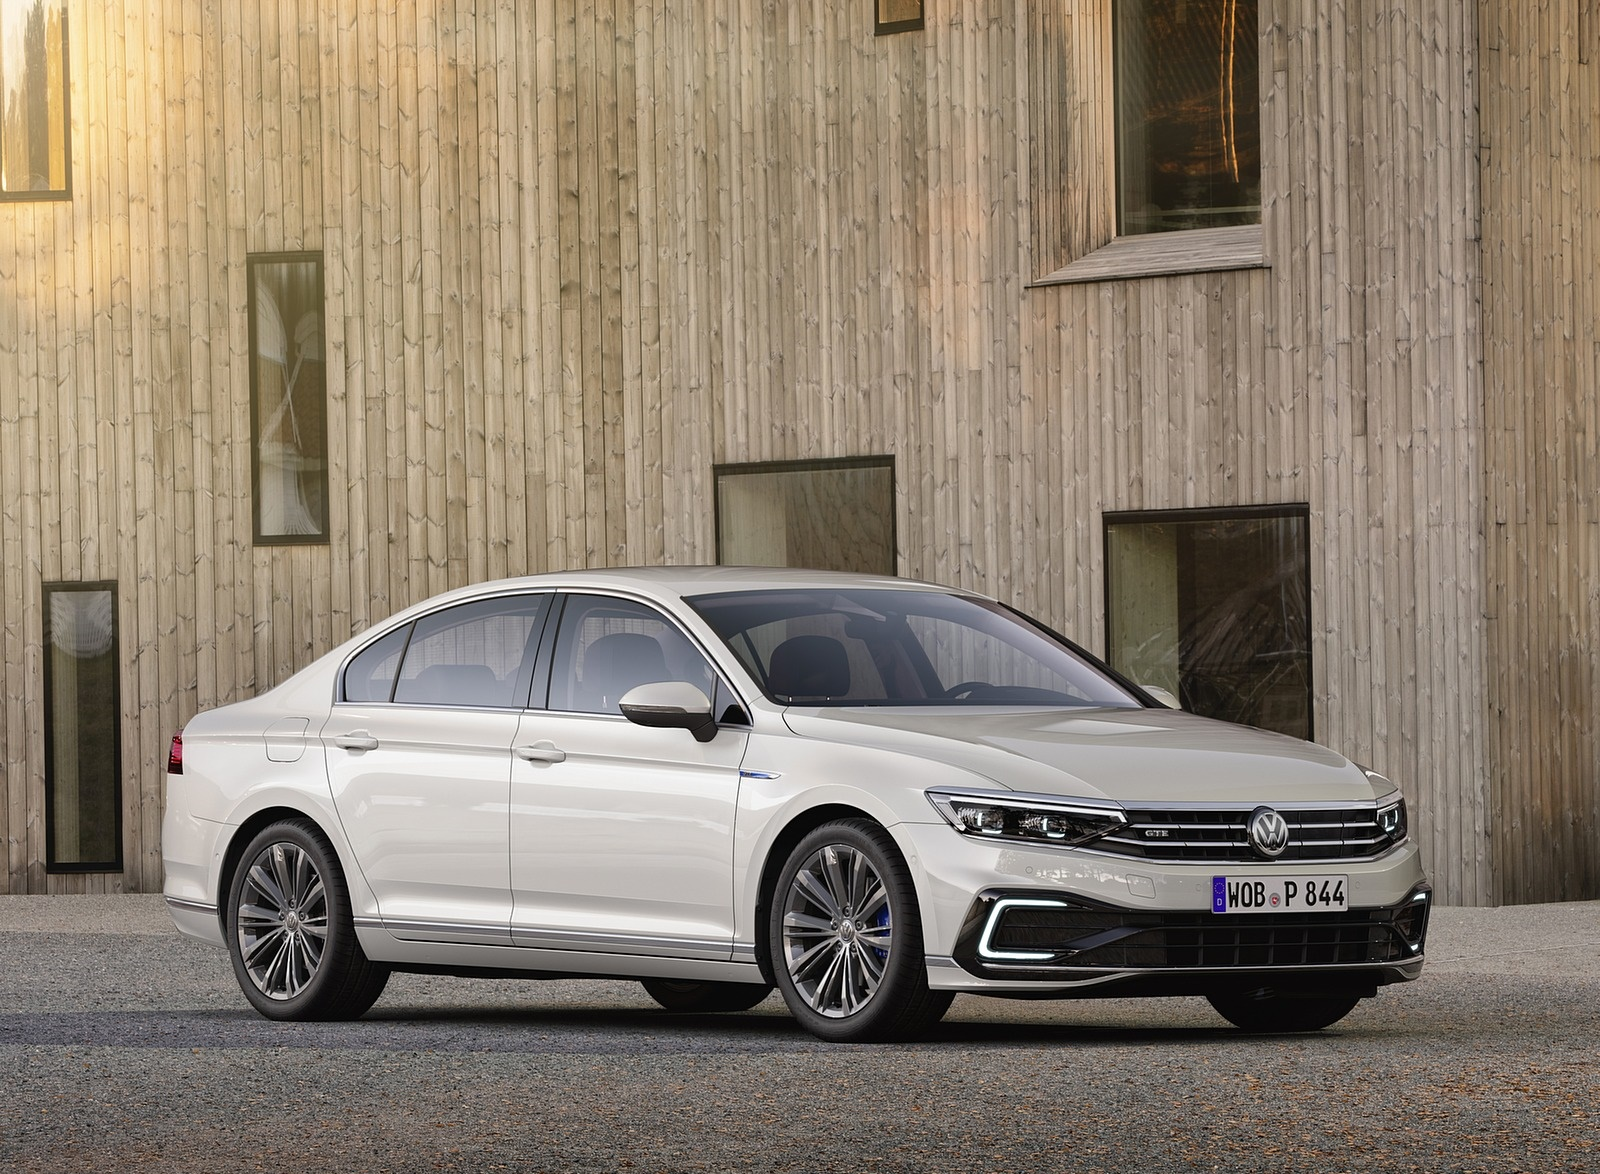 2020 Volkswagen Passat GTE Sedan (EU-Spec) Front Three-Quarter Wallpapers (7)